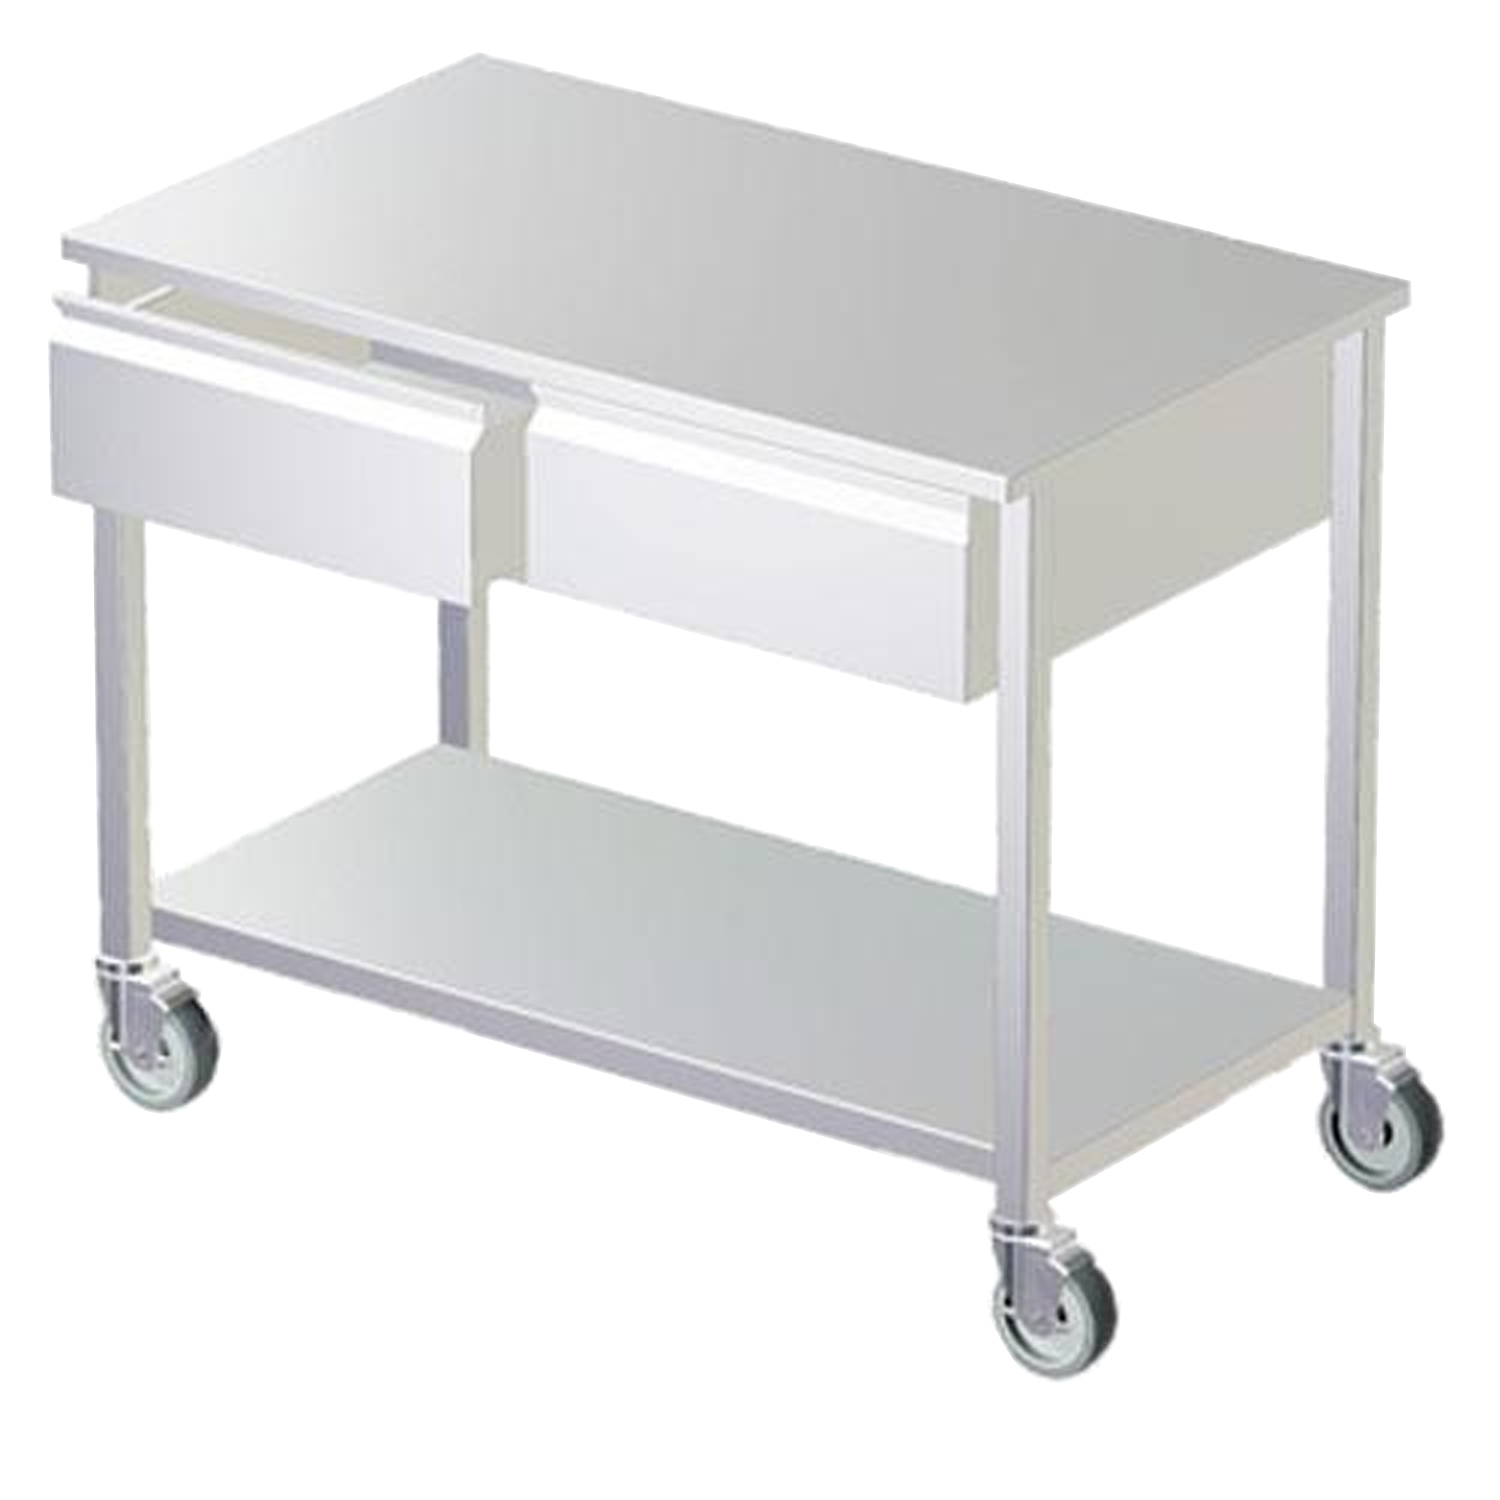 Avante Stainless Steel Mobile Exam Table with Drawers and Undershelf